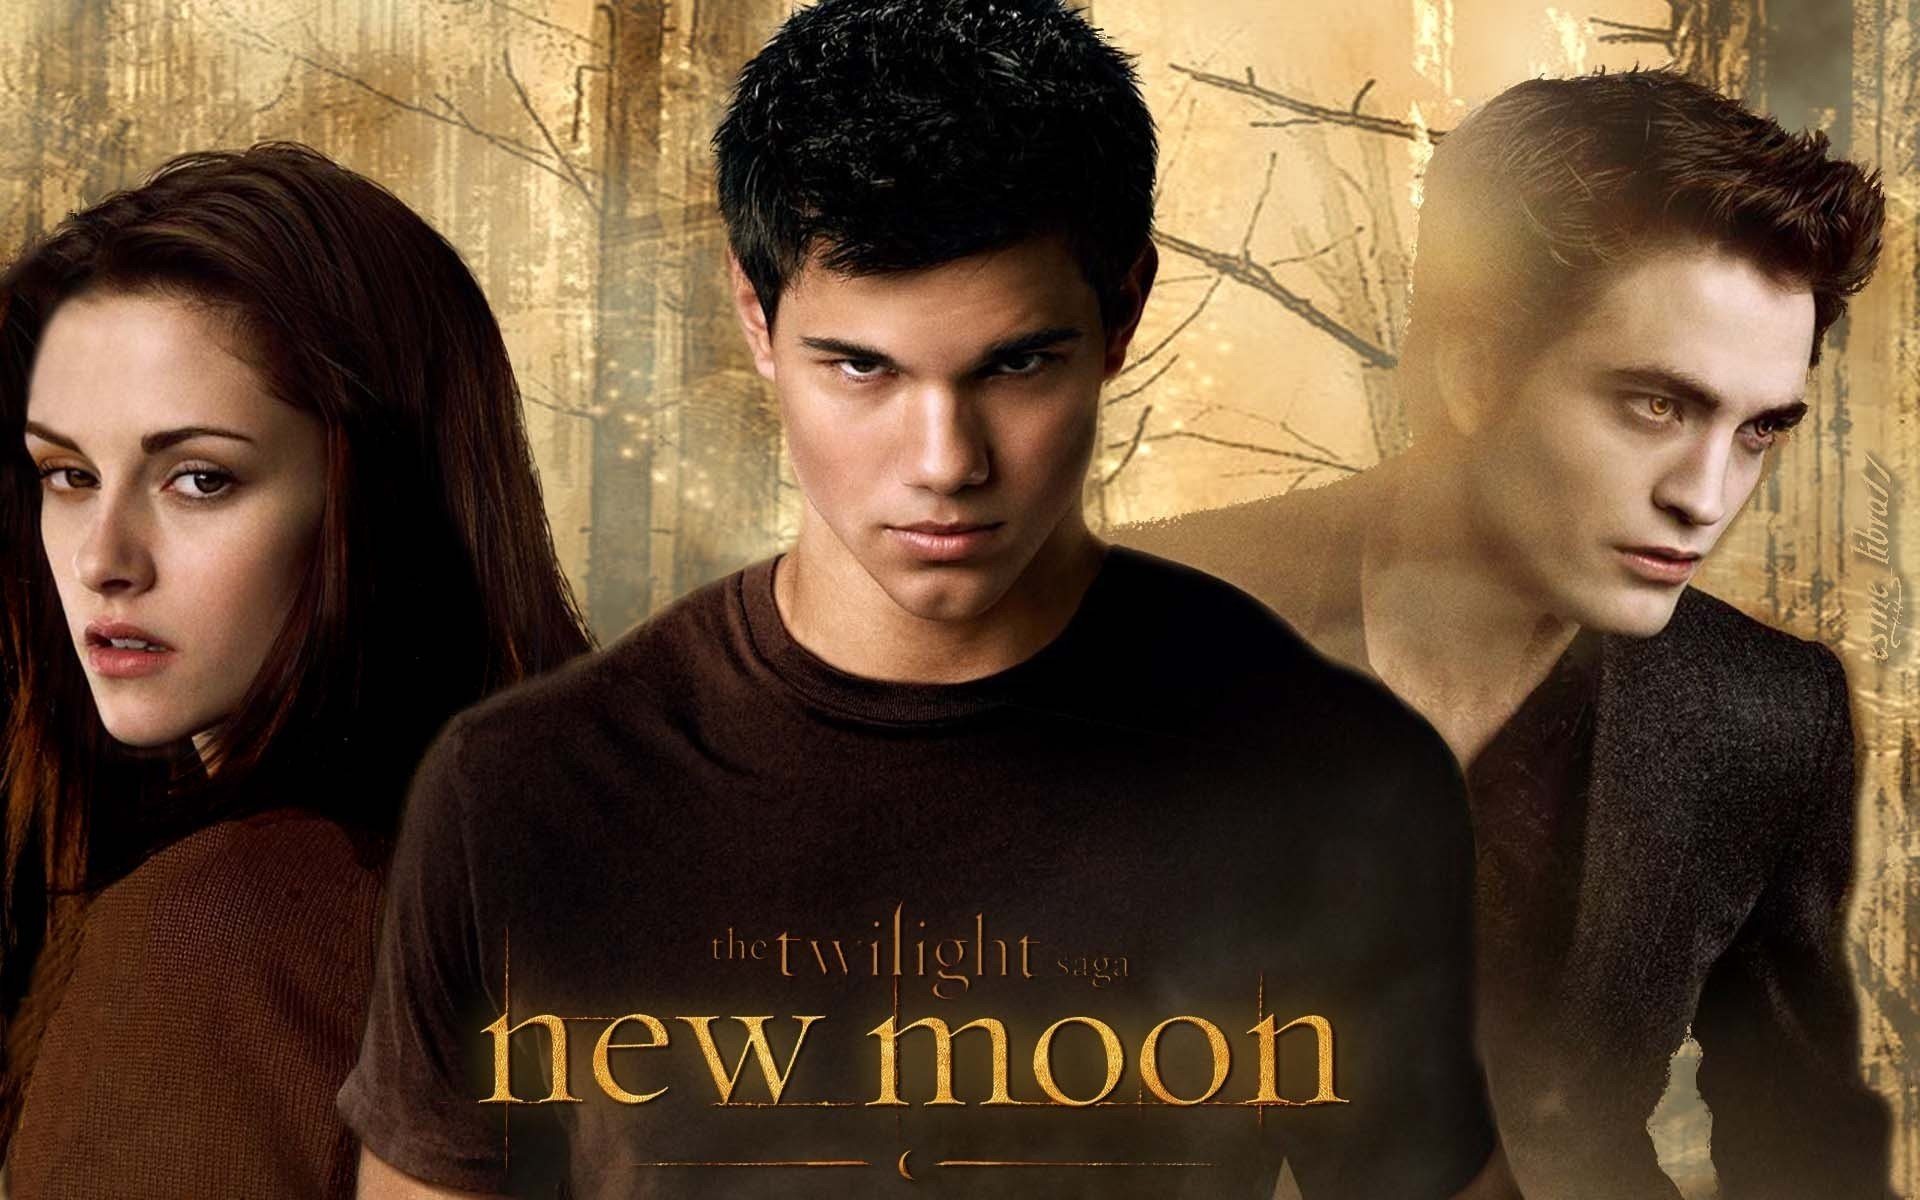 bella-Jacob-and-Edward-New-Moon-Wallpaper-twilight-series-7430198-1920-1200 - сумреки обои